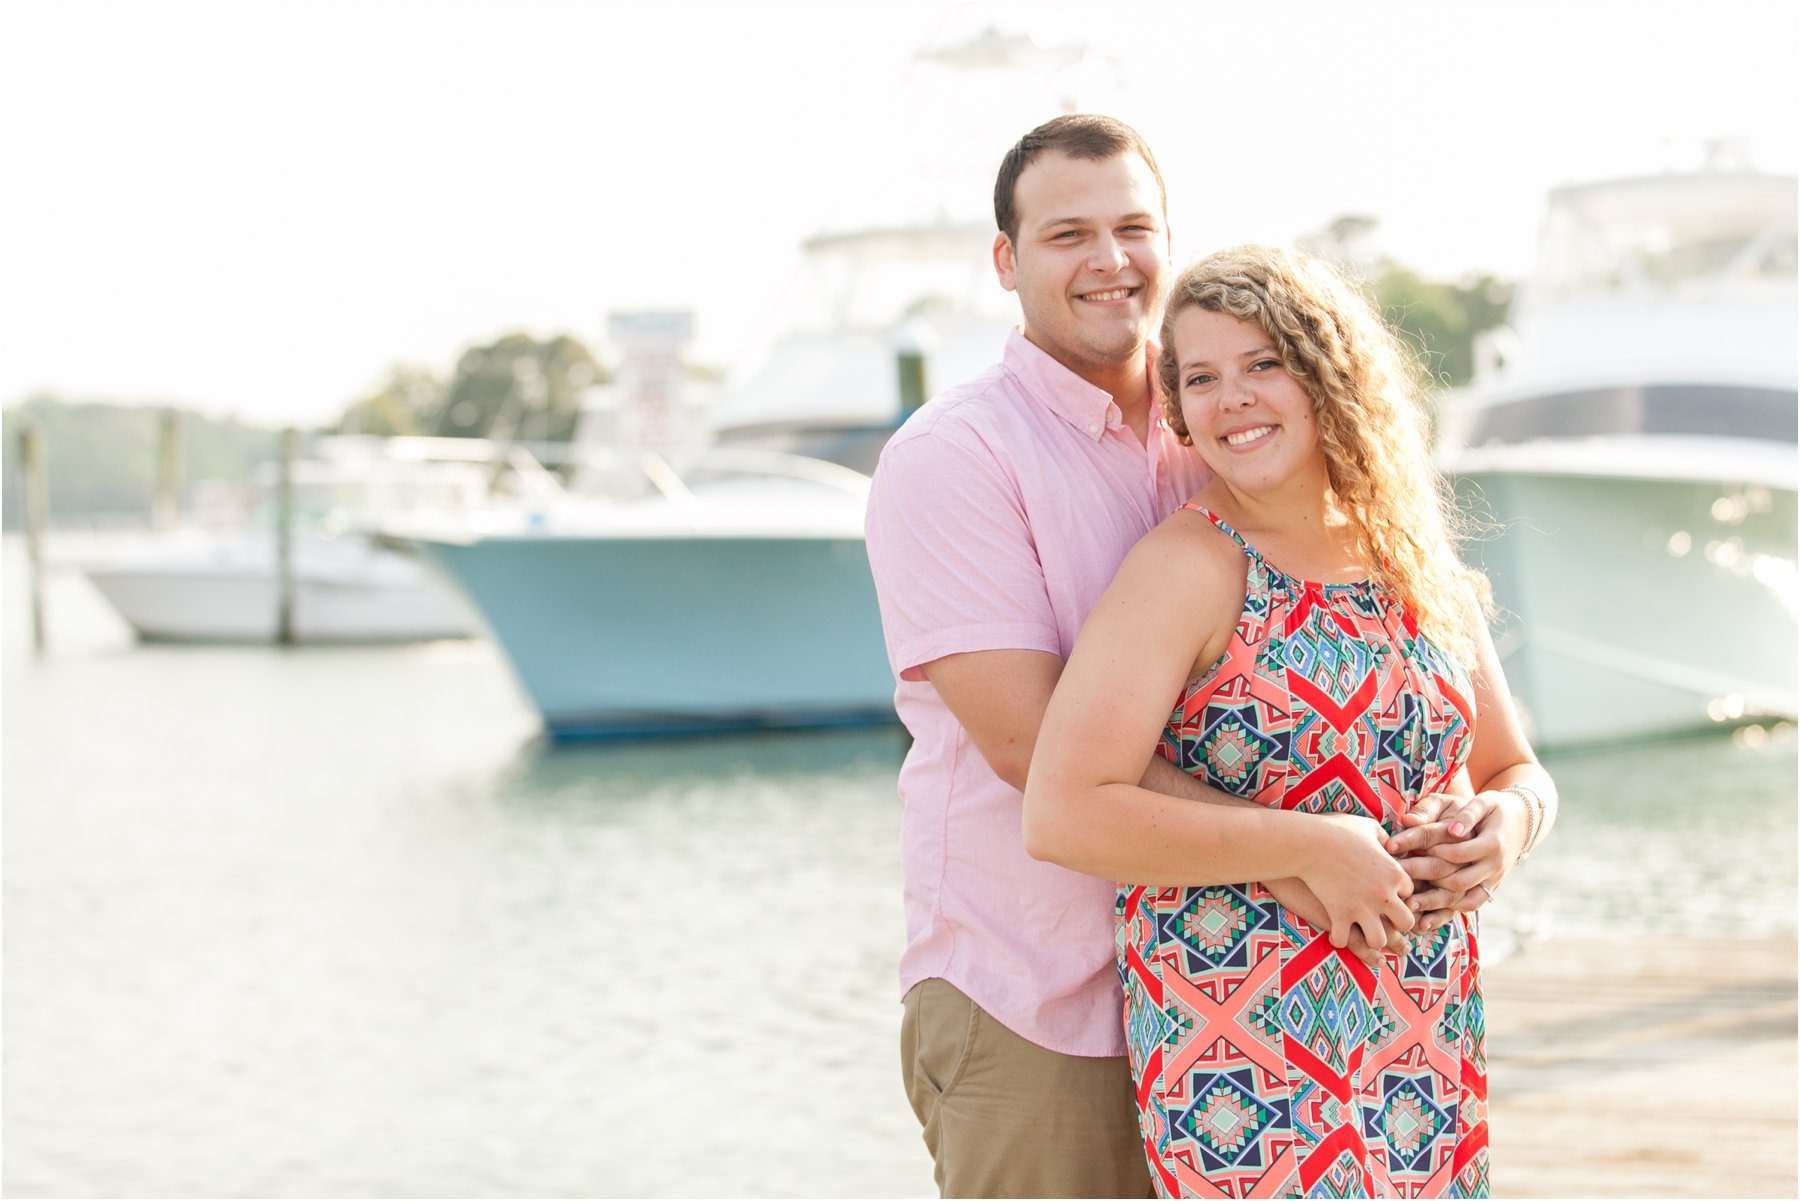 engagement_beach_Photography_Jessica_Ryan_Photography_virginia_virginia_beach_0292